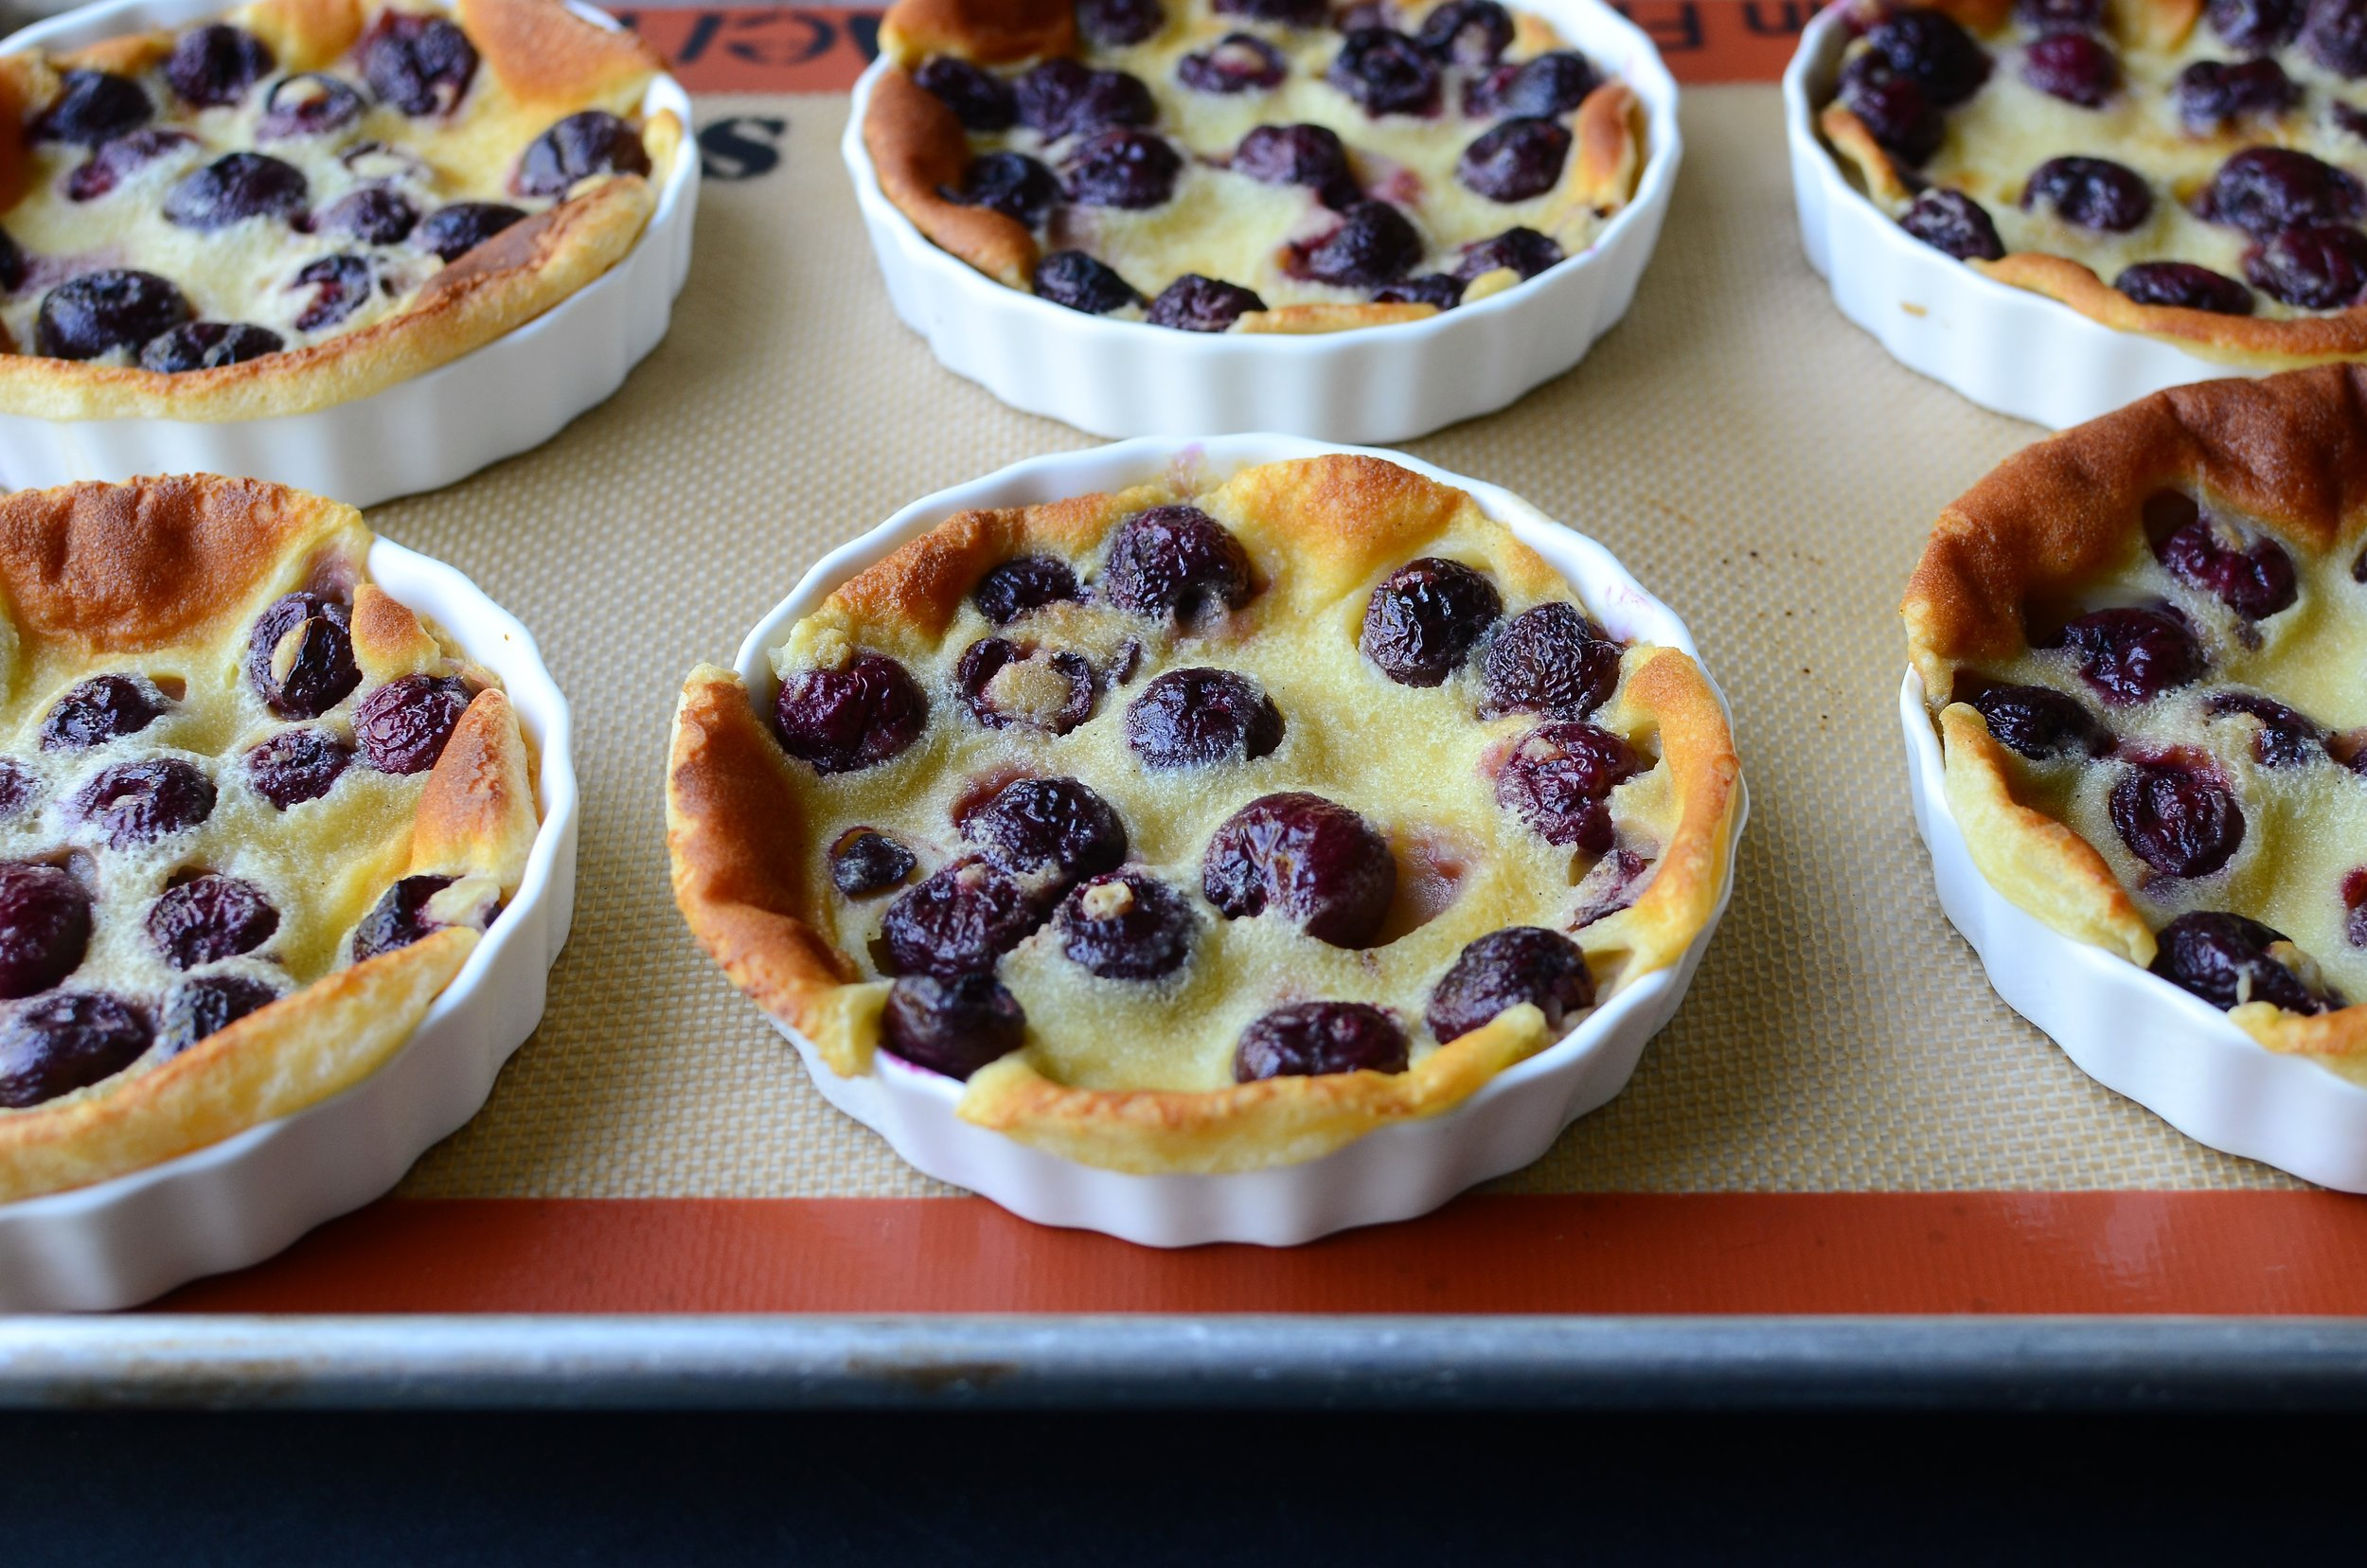 Cherry Clafoutis - ButterYum. French clafoutis recipe. how to make individual clafoutis. recipe for cherry clafoutis. dessert recipe for sweet cherries. cherry dessert recipe. easy French dessert recipe.